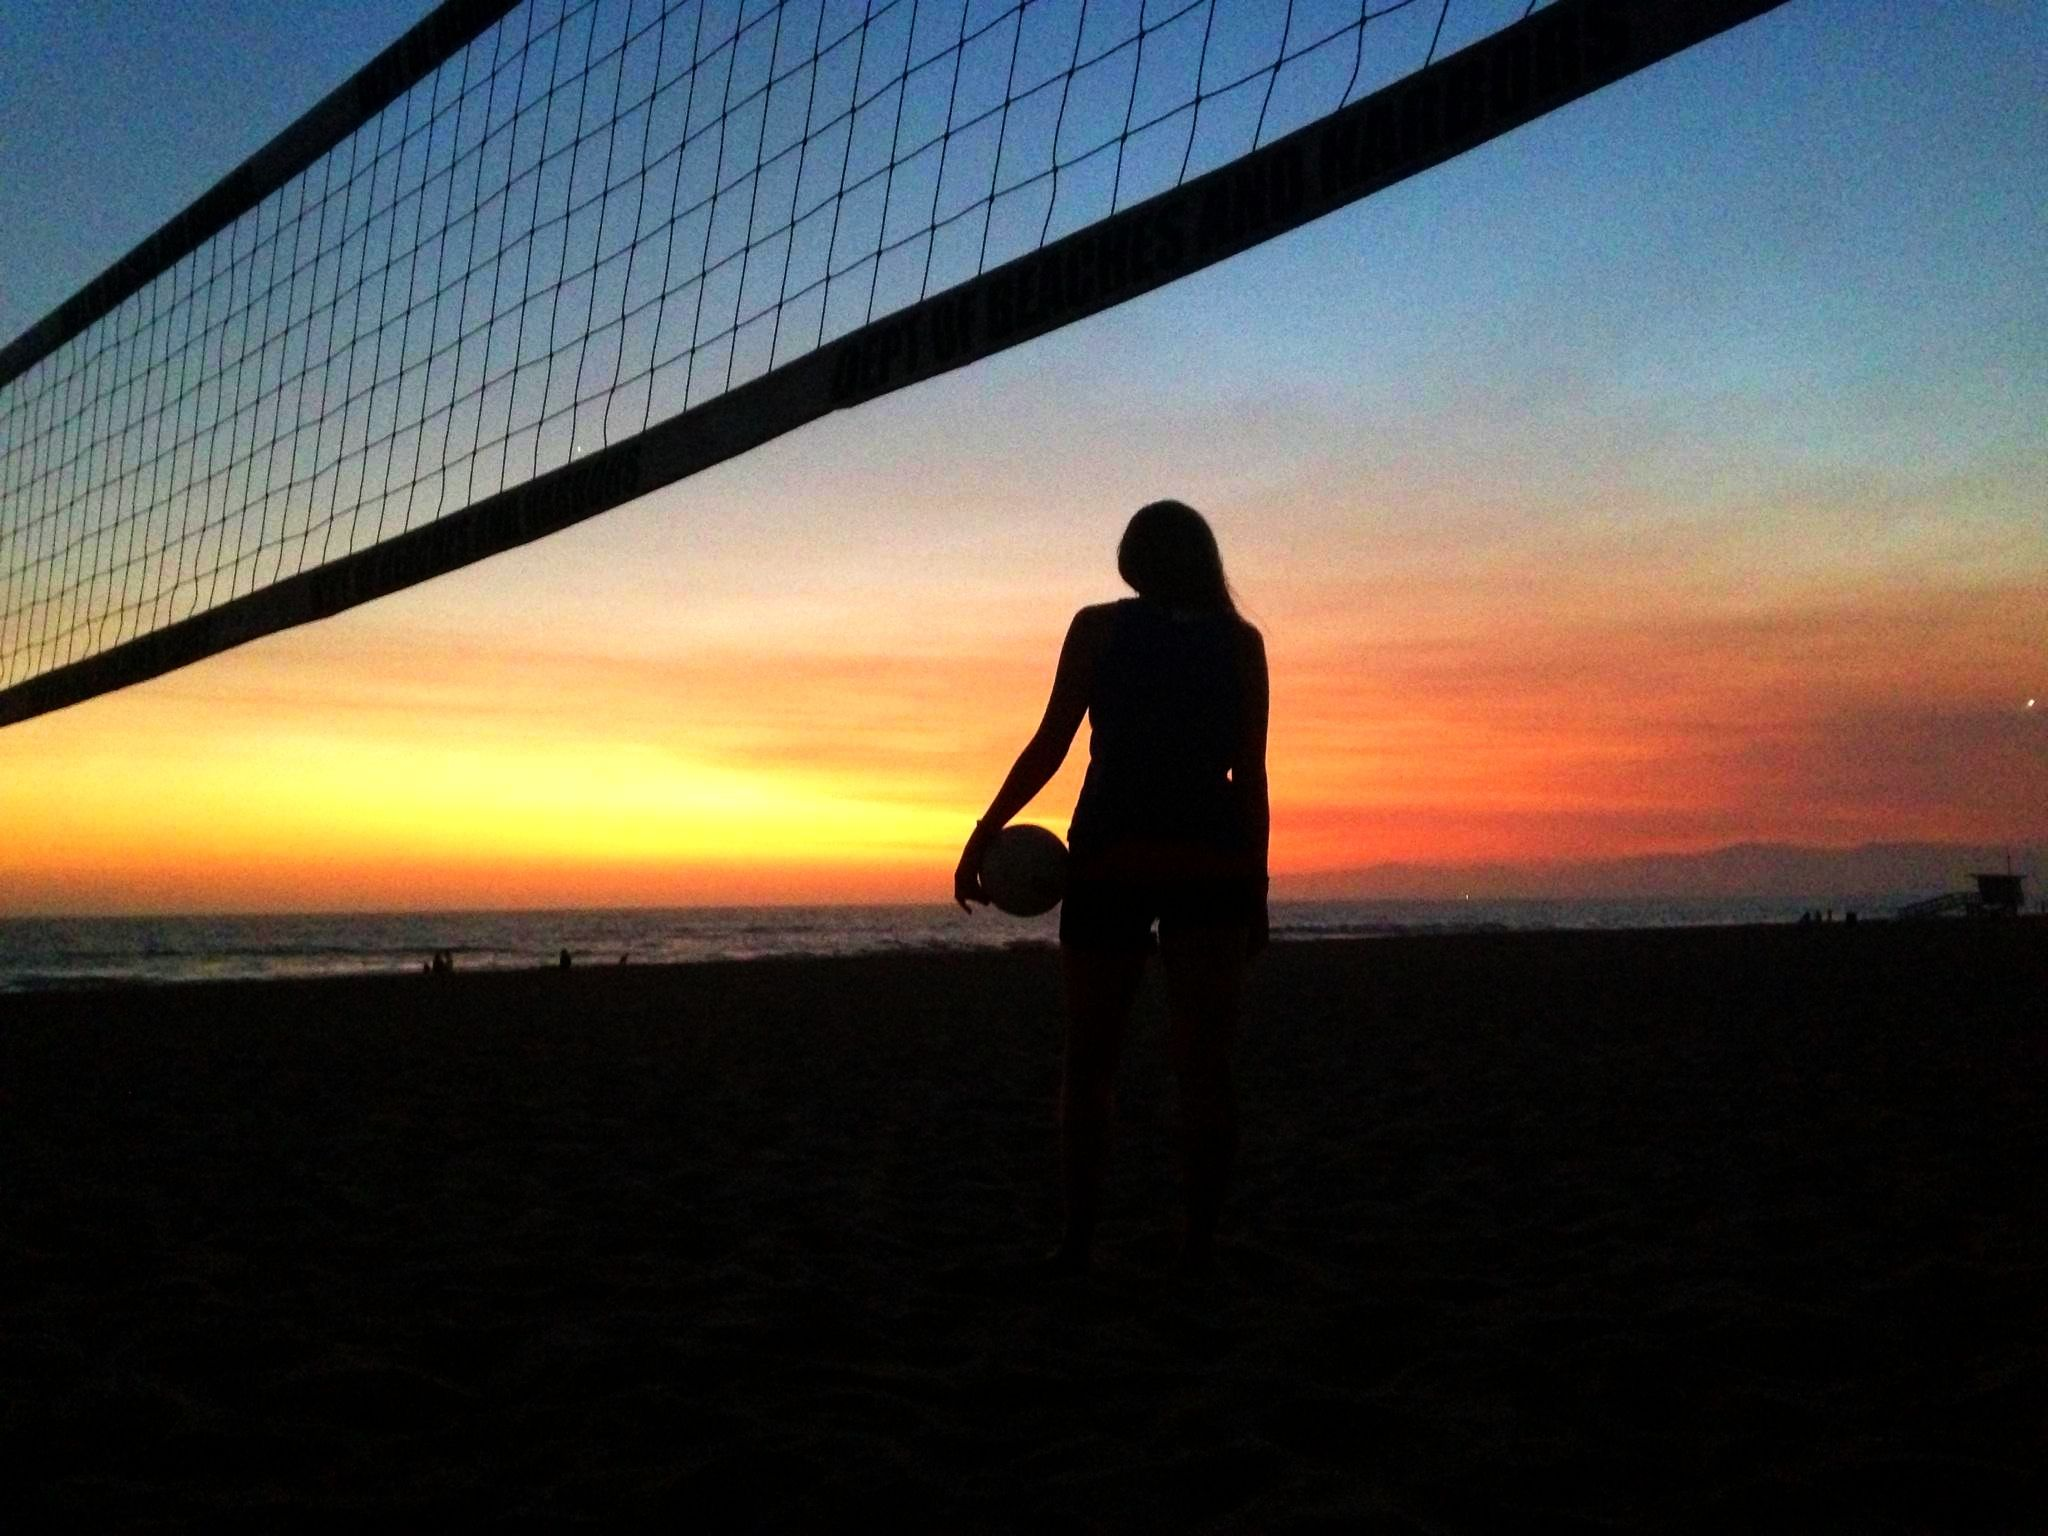 Beach Volleyball Volleyball Wallpaper Volleyball Pictures Beach Volleyball